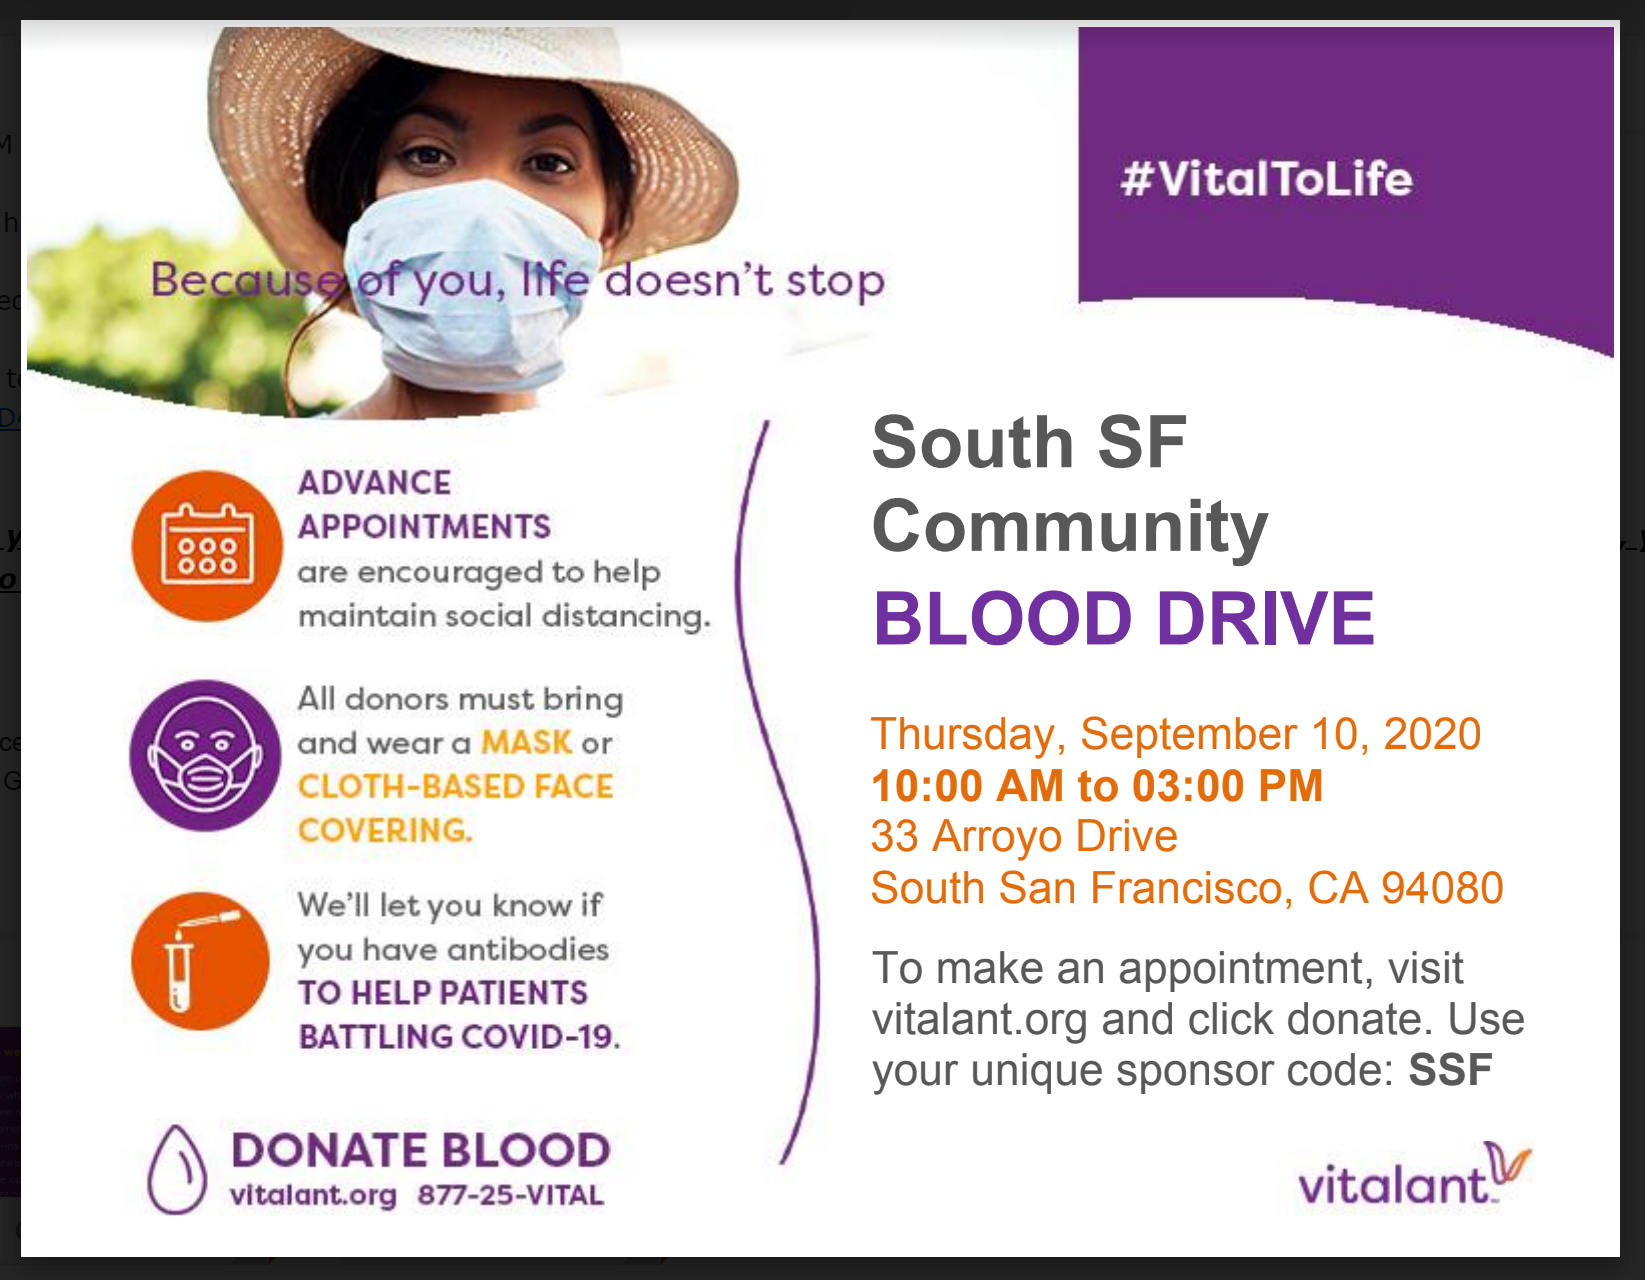 Blood Drive Sept 10, 2020 in South San Francisco